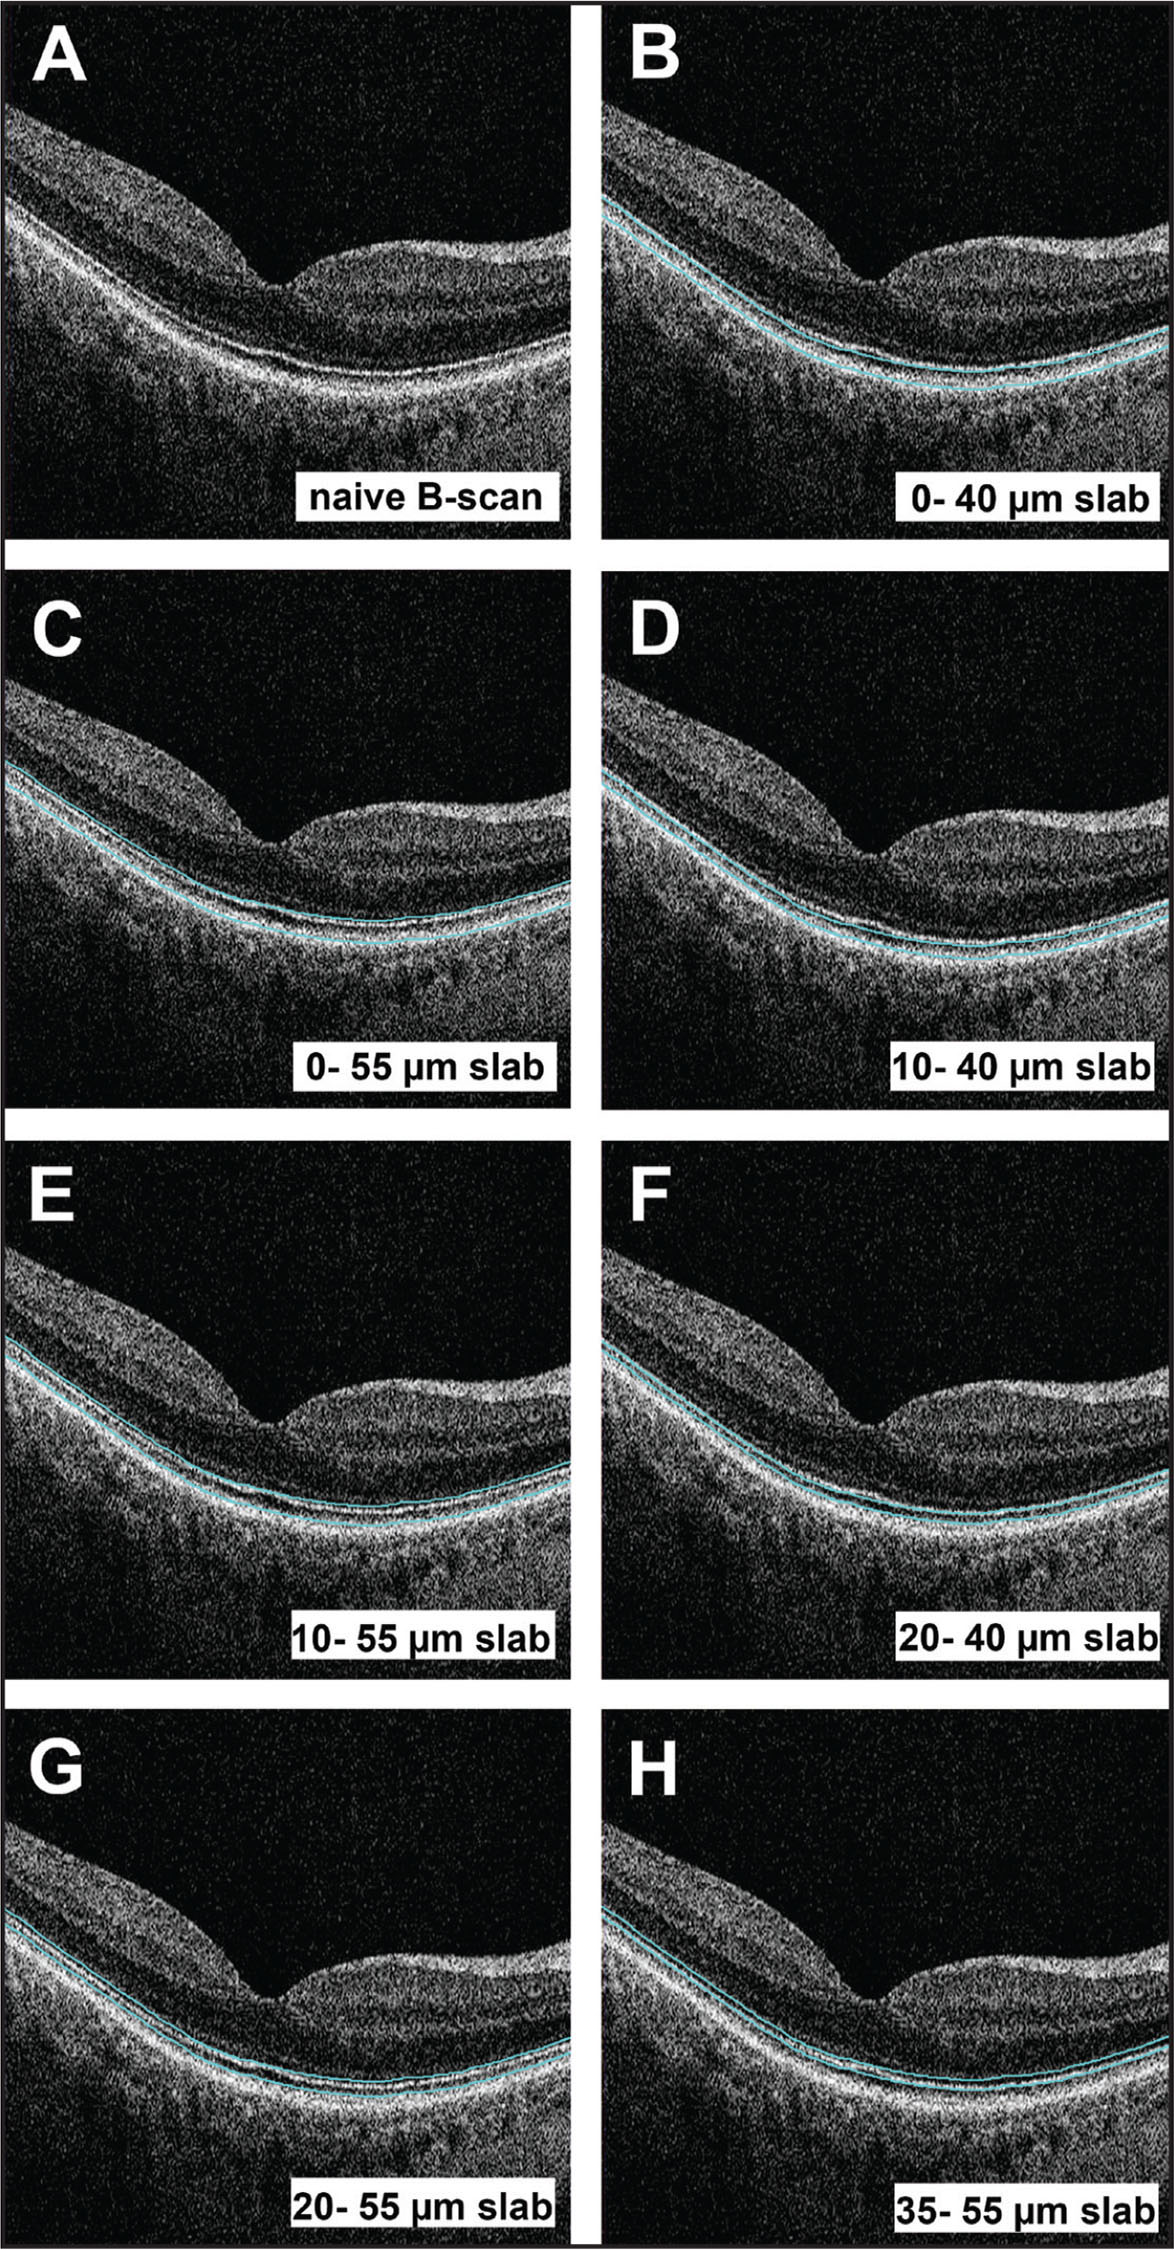 Spectral-domain OCT B-scans through the foveal center of a normal retina in the right eye of a 57-year-old man. The blue lines indicate the position of the intraretinal slabs, superimposed on a B-scan. (A) B-scan with no overlay to demonstrate the retinal layers. (B) B-scan showing a 40-µm thick slab overlay located 0 to 40 µm above the retinal pigment epithelium (RPE). (C) B-scan showing a 55-µm thick slab overlay located 0 to 55 µm above the RPE. (D) B-scan showing a 30-µm thick slab overlay located 10 to 40 µm above the RPE. (E) B-scan showing a 45-µm thick slab overlay located 10 to 55 µm above the RPE. (F) B-scan showing a 20-µm thick slab overlay located 20 to 40 µm above the RPE. (G) B-scan showing a 35-µm thick slab overlay located 20 to 55 µm above the RPE. (H) B-scan showing a 20-µm thick slab overlay located 35 to 55 µm above the RPE.